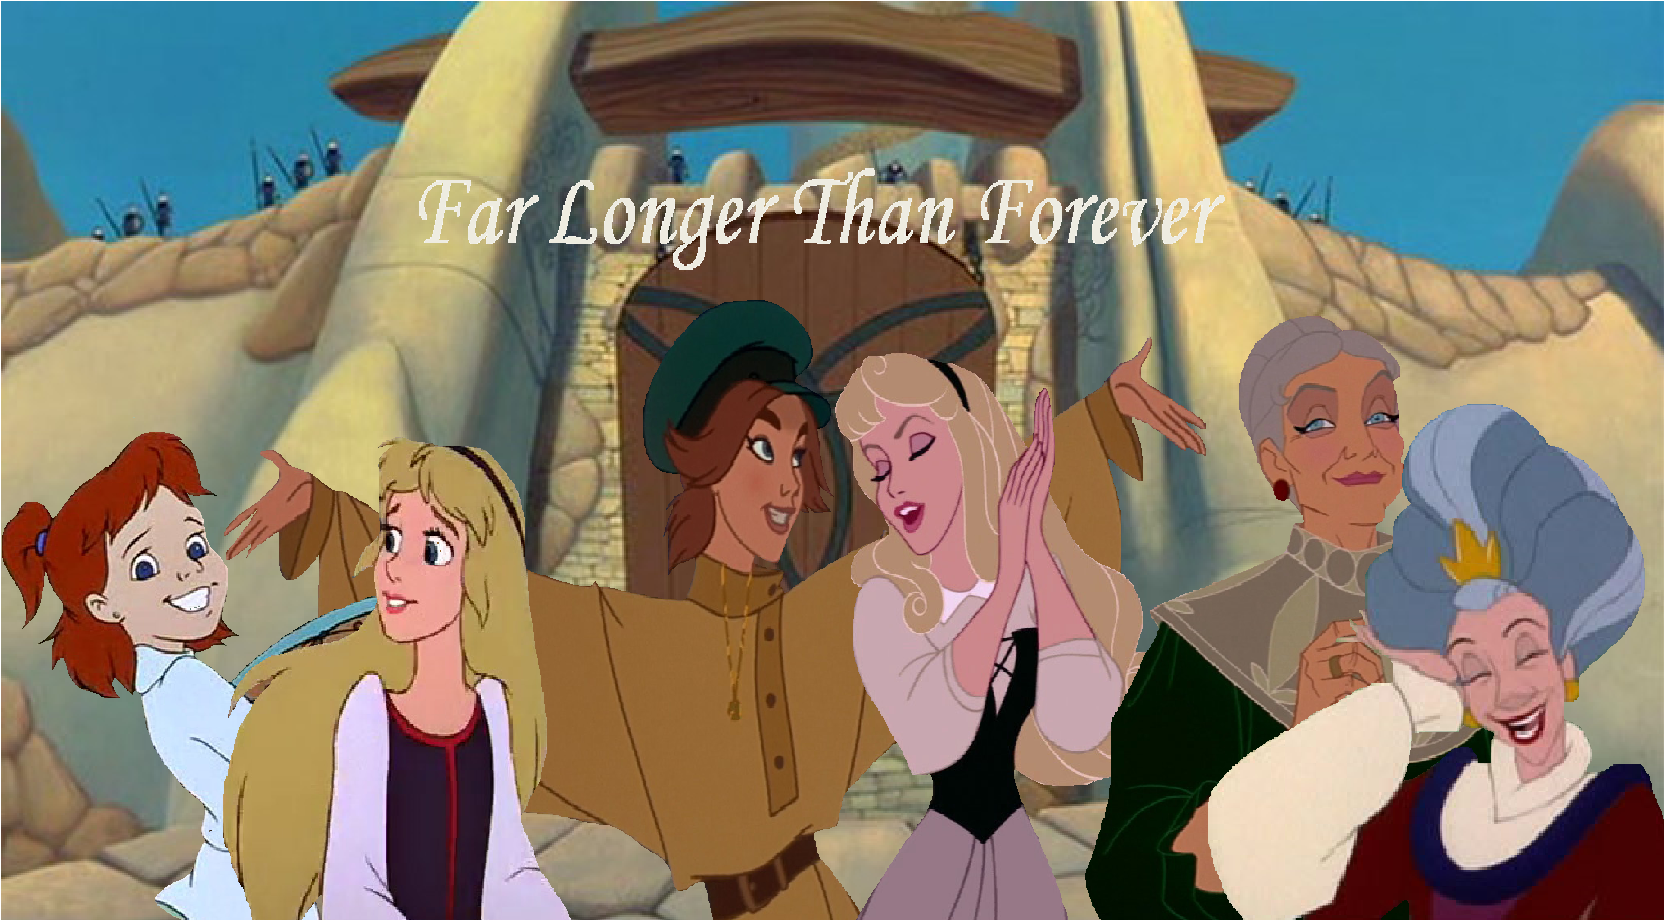 Far Longer Than Forever